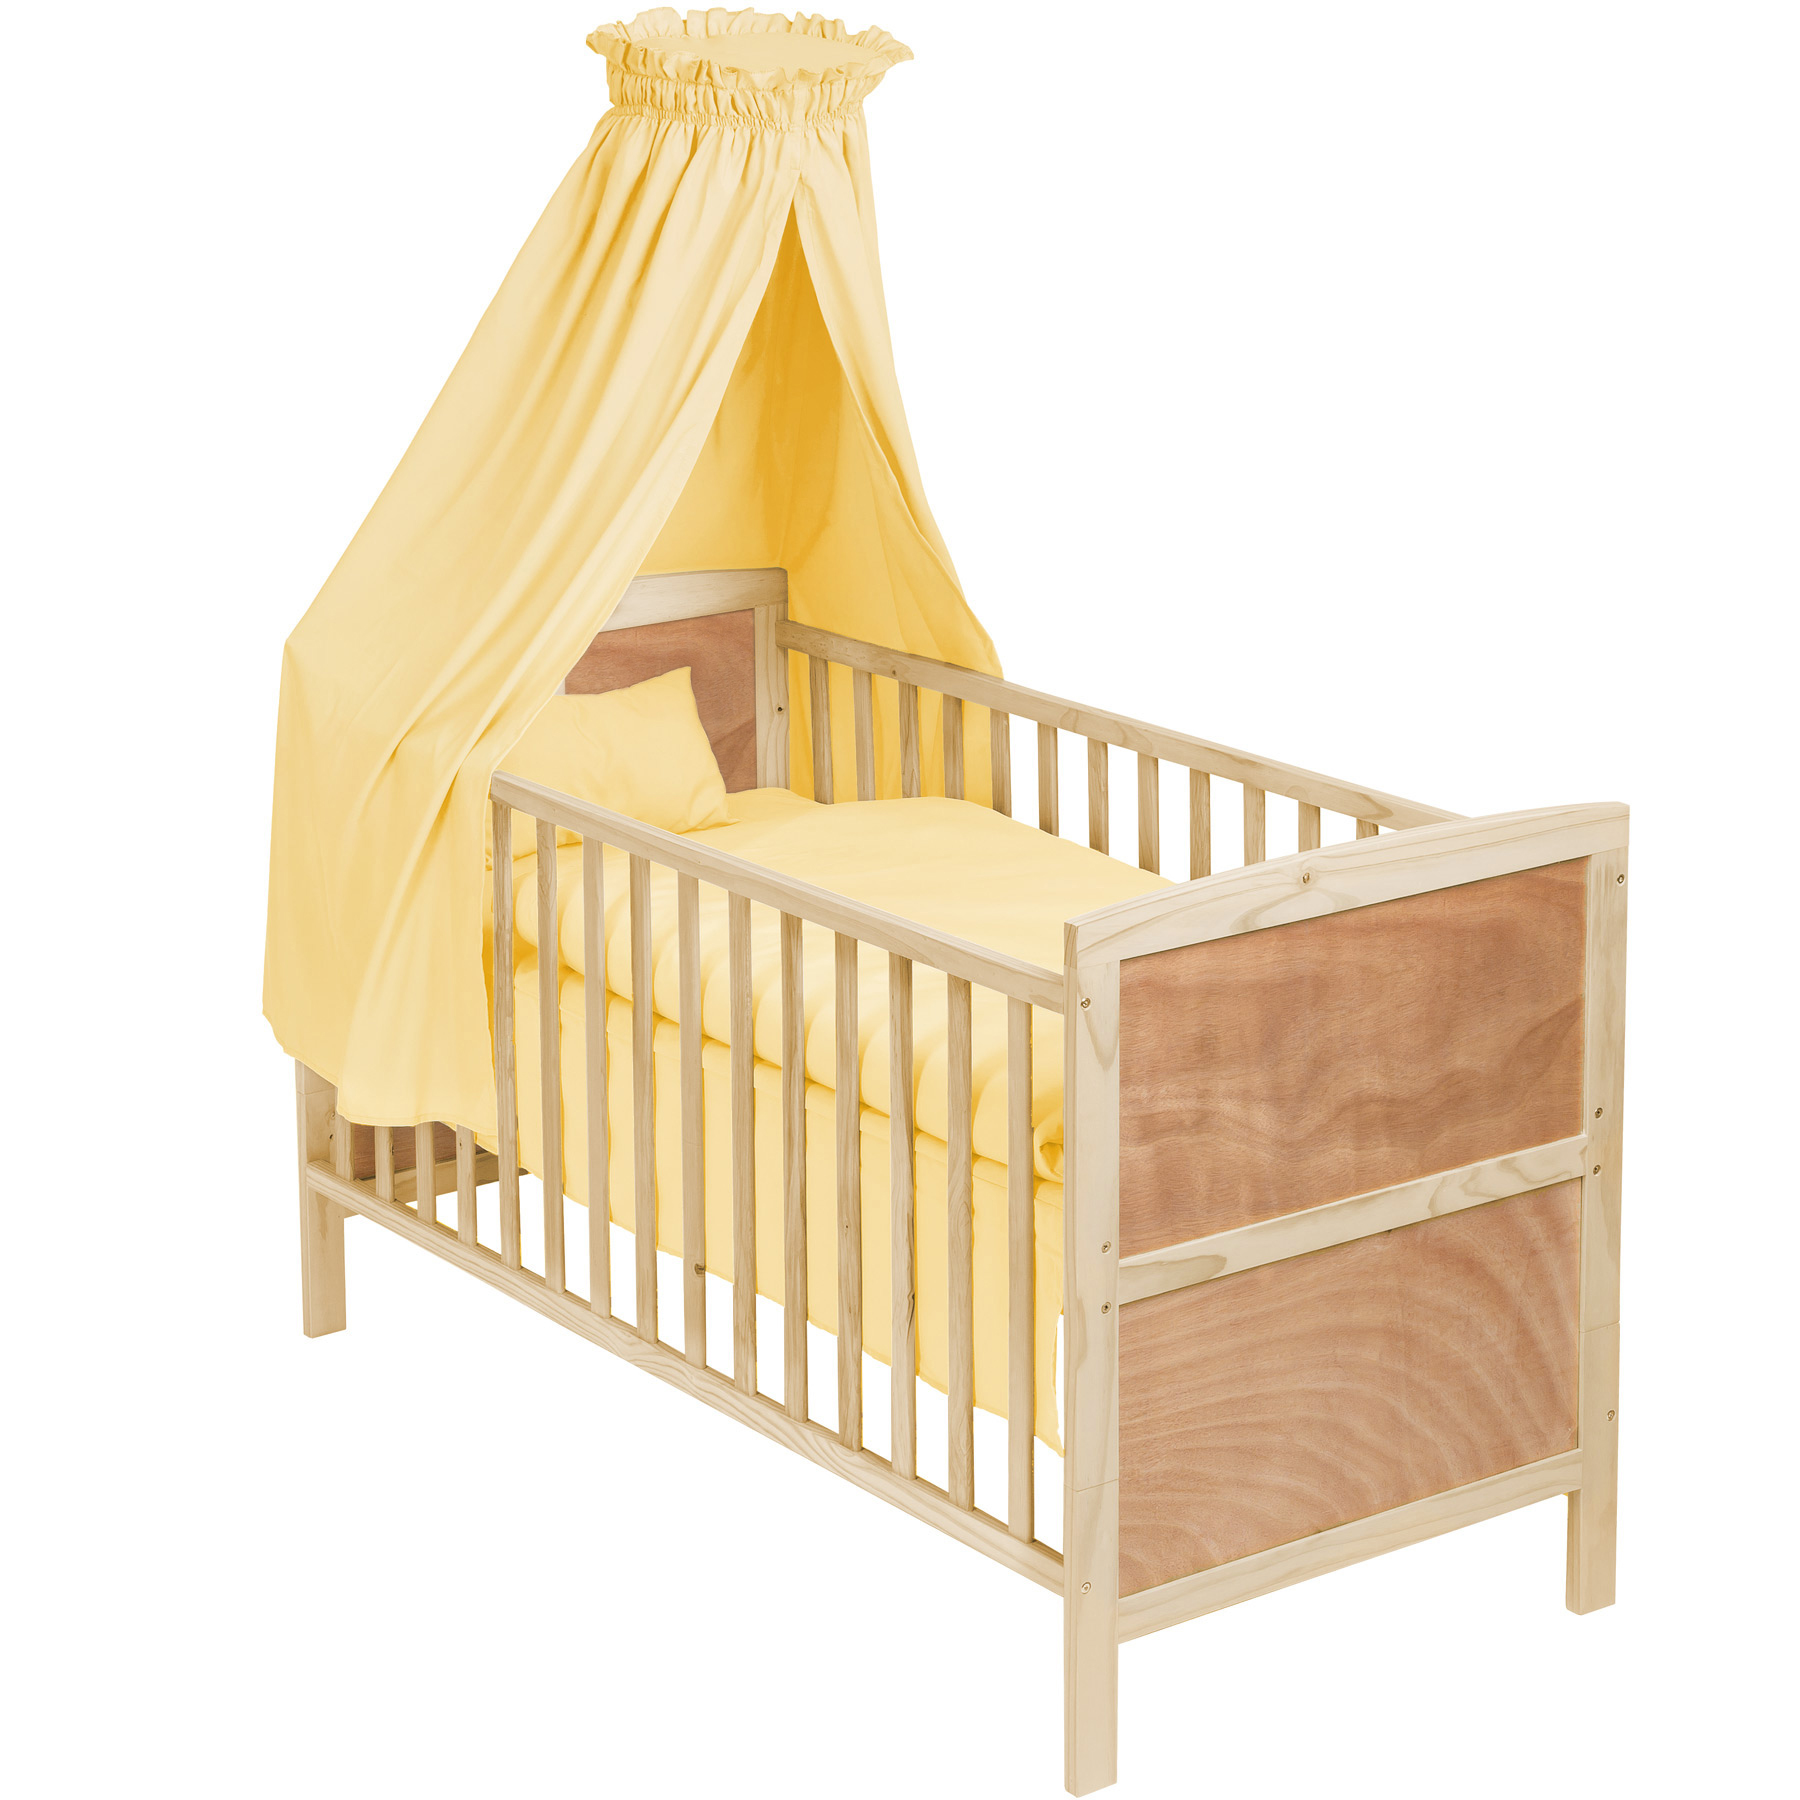 Baby crib cradle cot bassinet bed wood moses basket bedding set mattress roof n - Couette lit bebe ikea ...